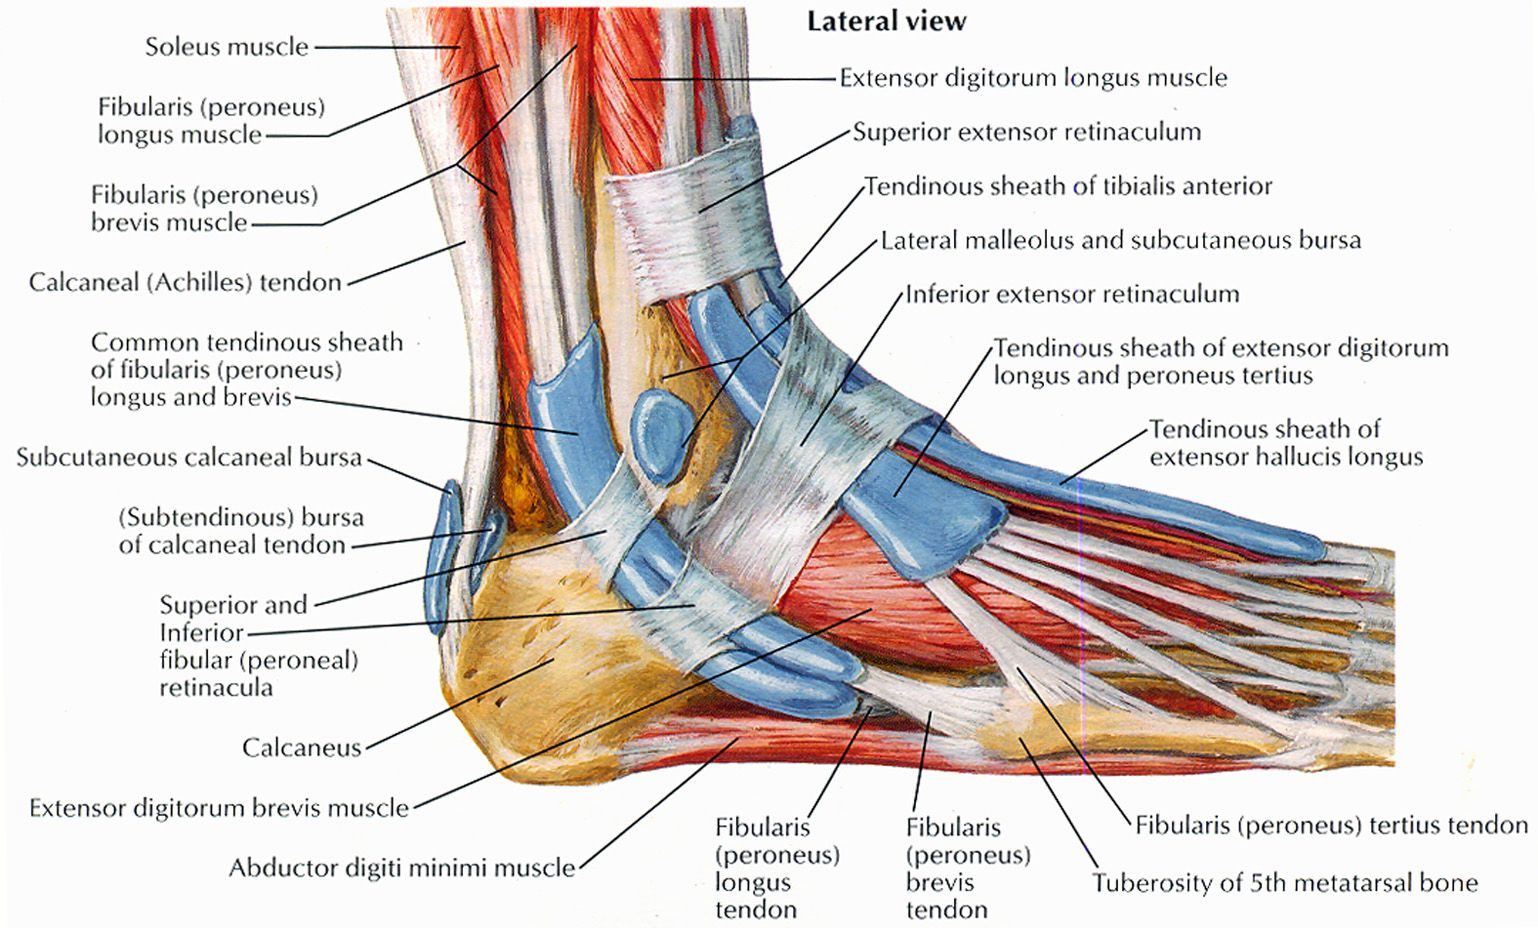 foot muscle and tendon anatomy - Google Search | MUSCLES AND ANATOMY ...